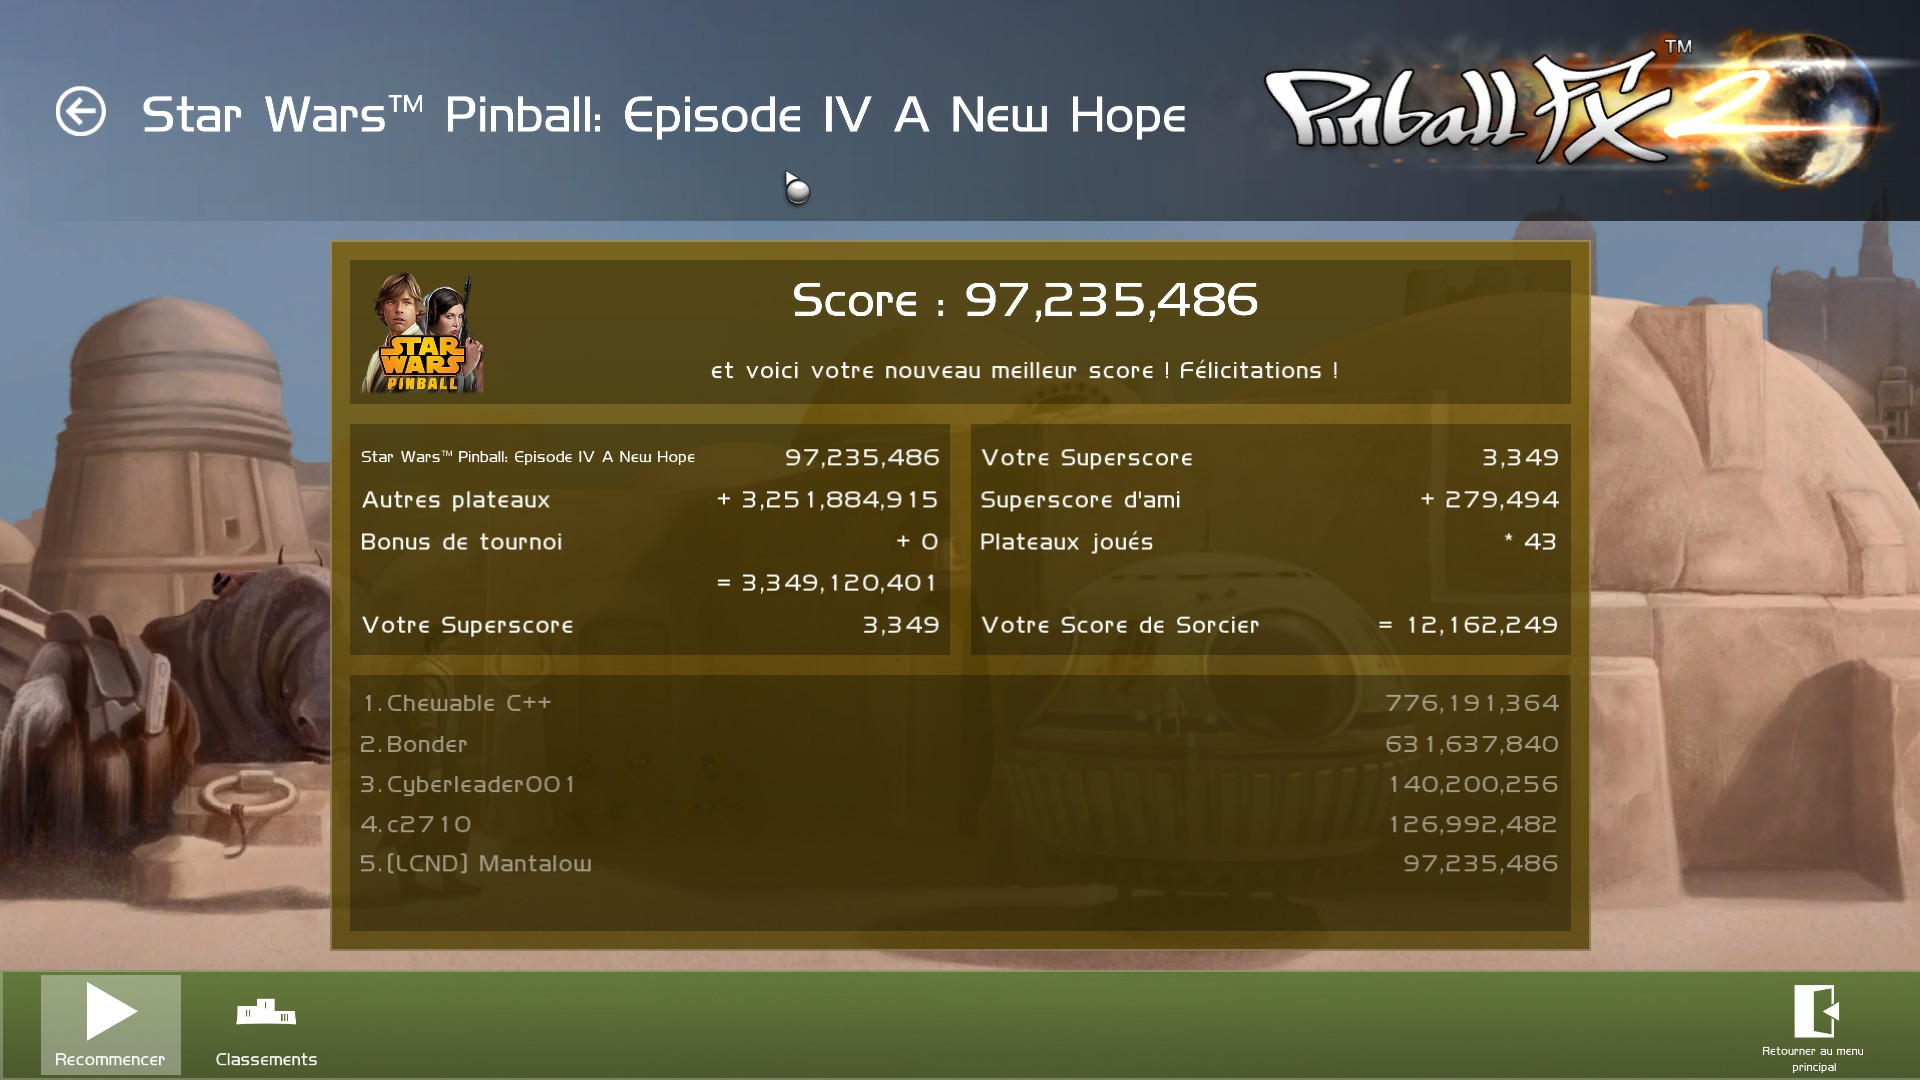 Mantalow: Pinball FX 2: Star Wars Pinball: Episode IV: A New Hope (PC) 97,235,486 points on 2015-03-05 10:00:00